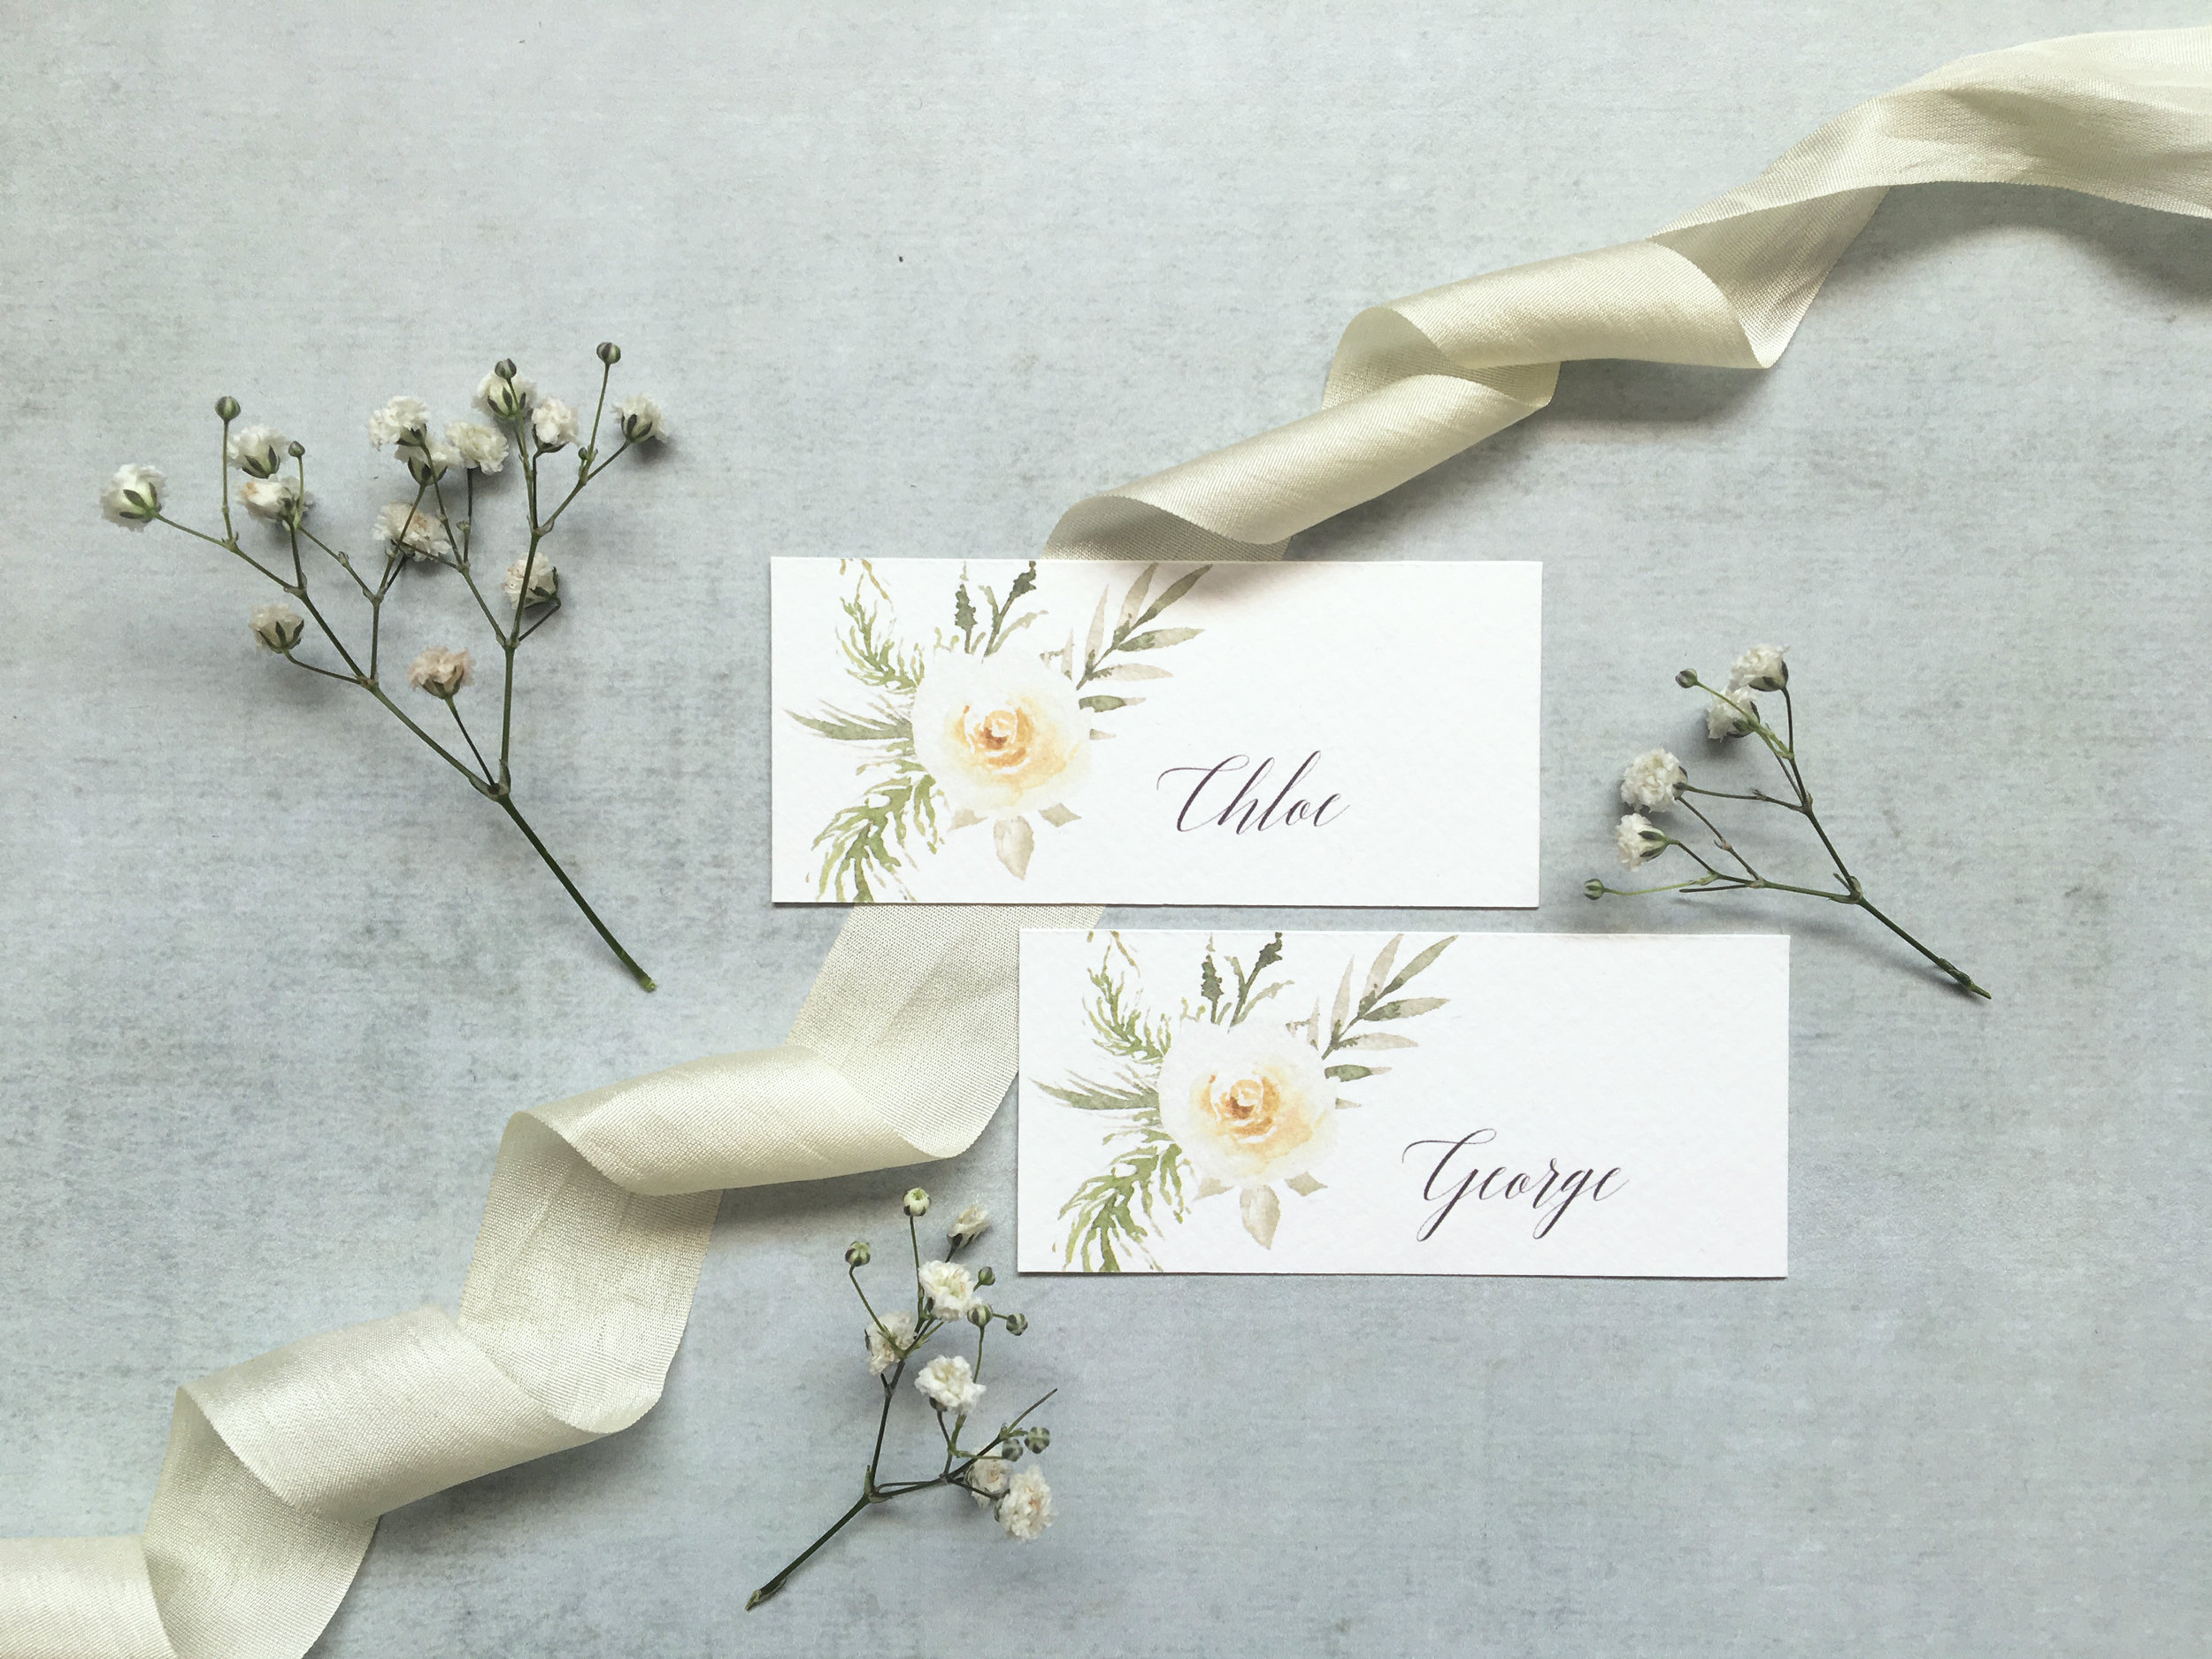 Vintage Rose Place Cards.jpg